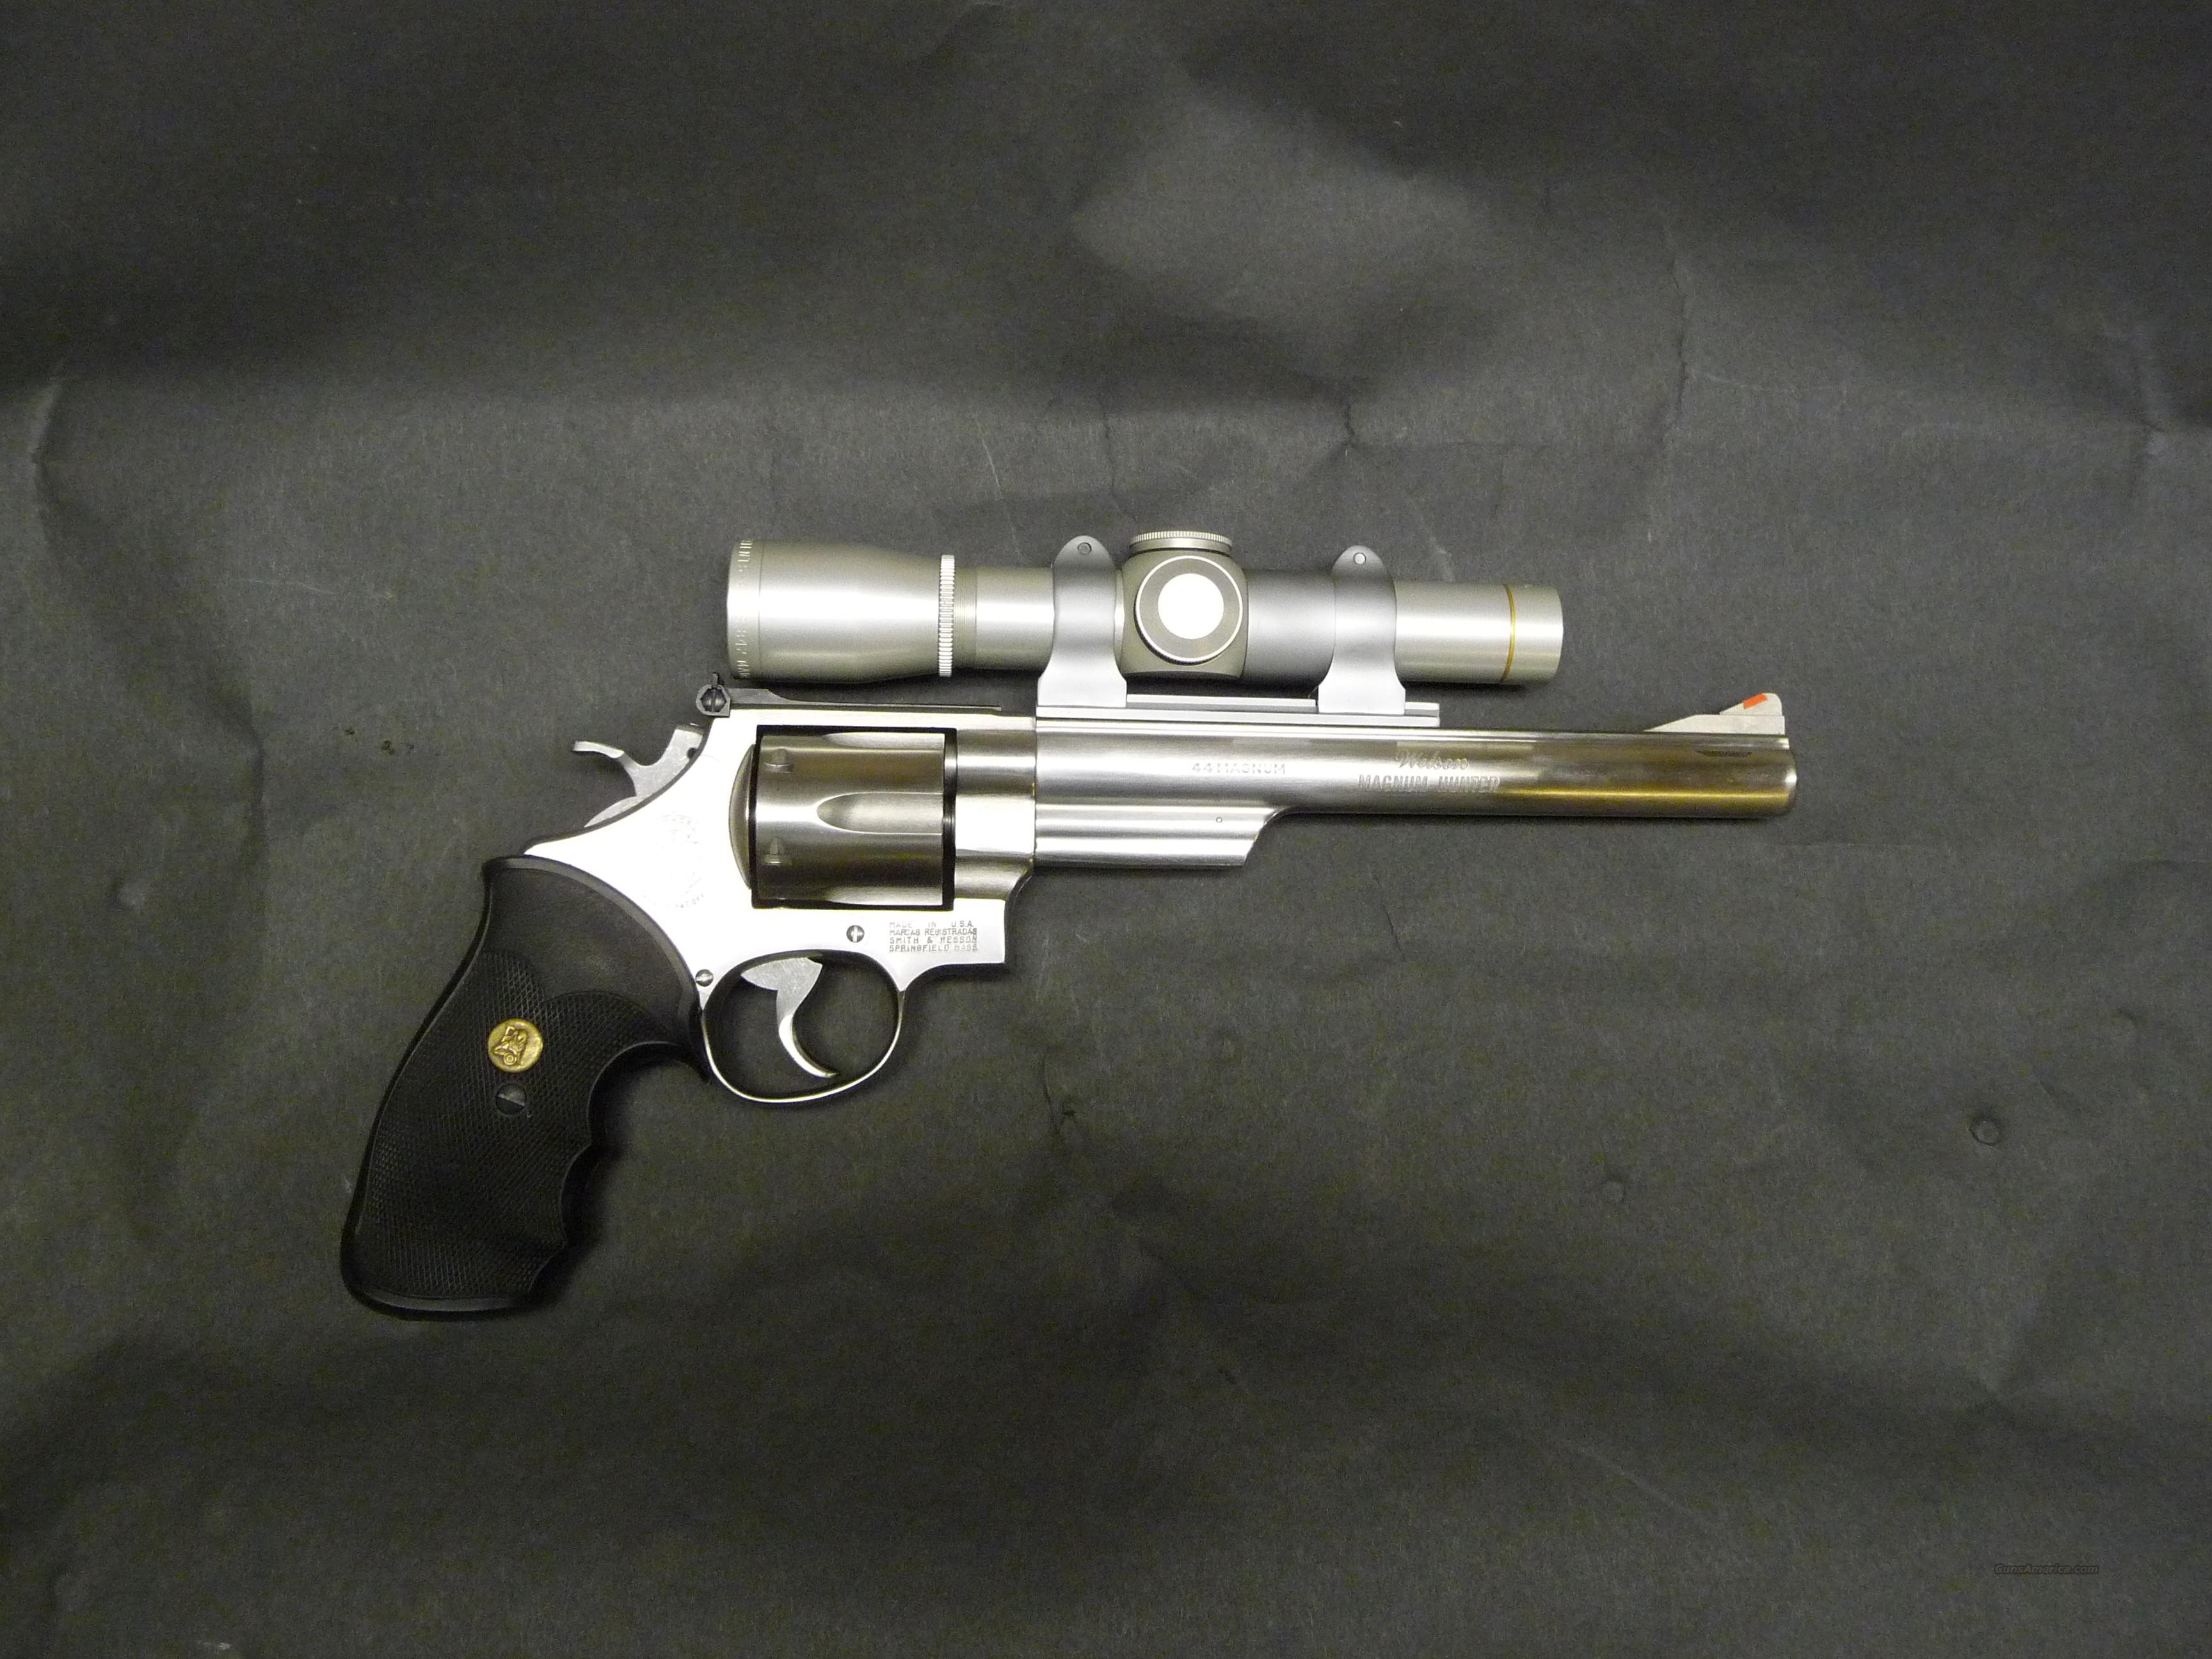 SMITH & WESSON 629 WILSON MAGNUM HUNTER  Guns > Pistols > Smith & Wesson Revolvers > Model 629